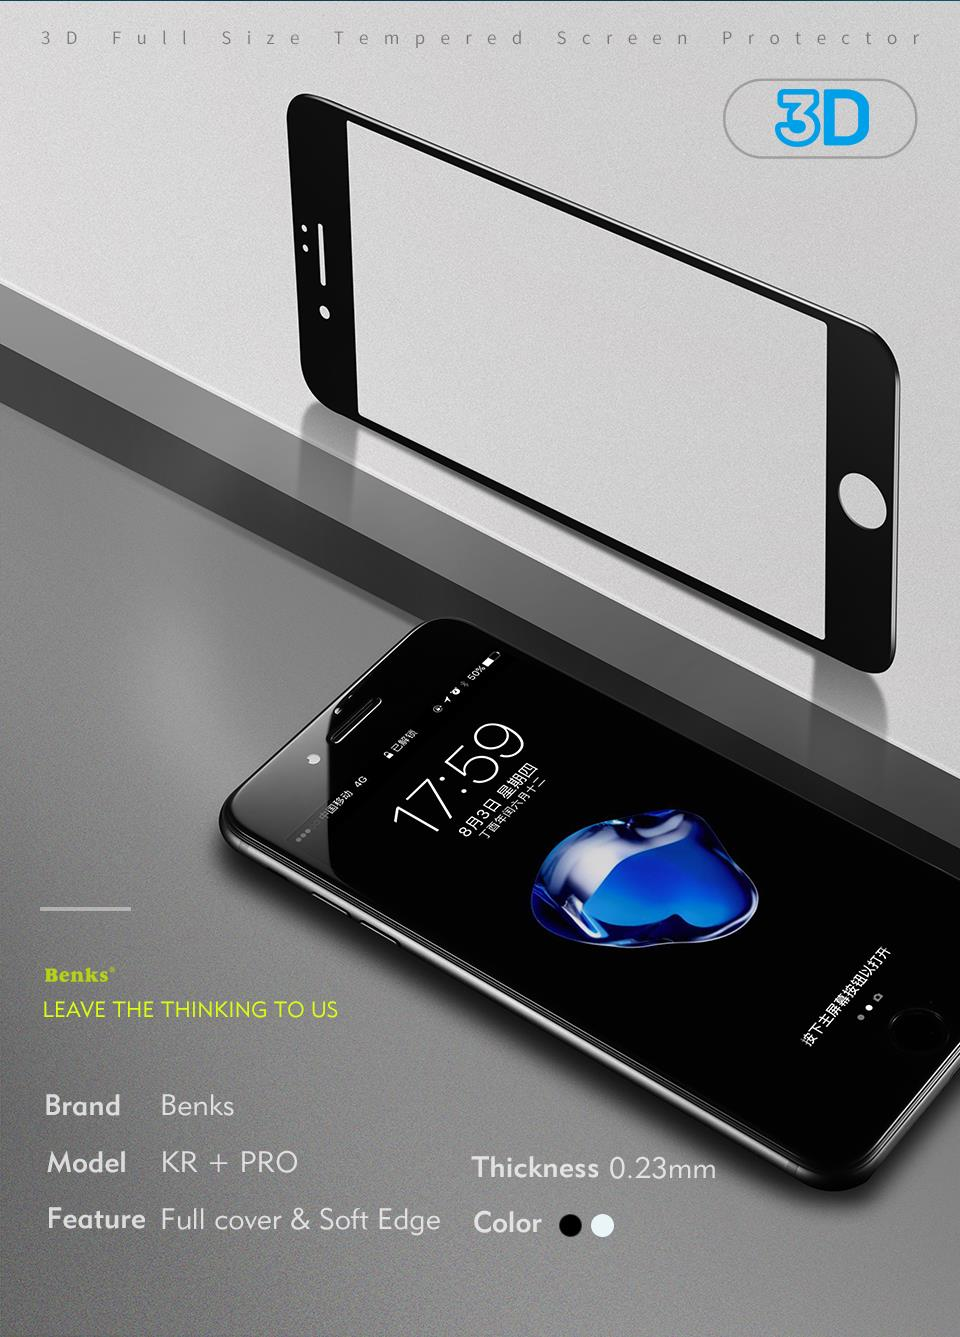 Benks Glass For Iphone 8 7 6s Plus Full Curved Tempered 2in1 Gravity Case Cover 6 Screen Protector 3d 023mm Protection 7plus Film